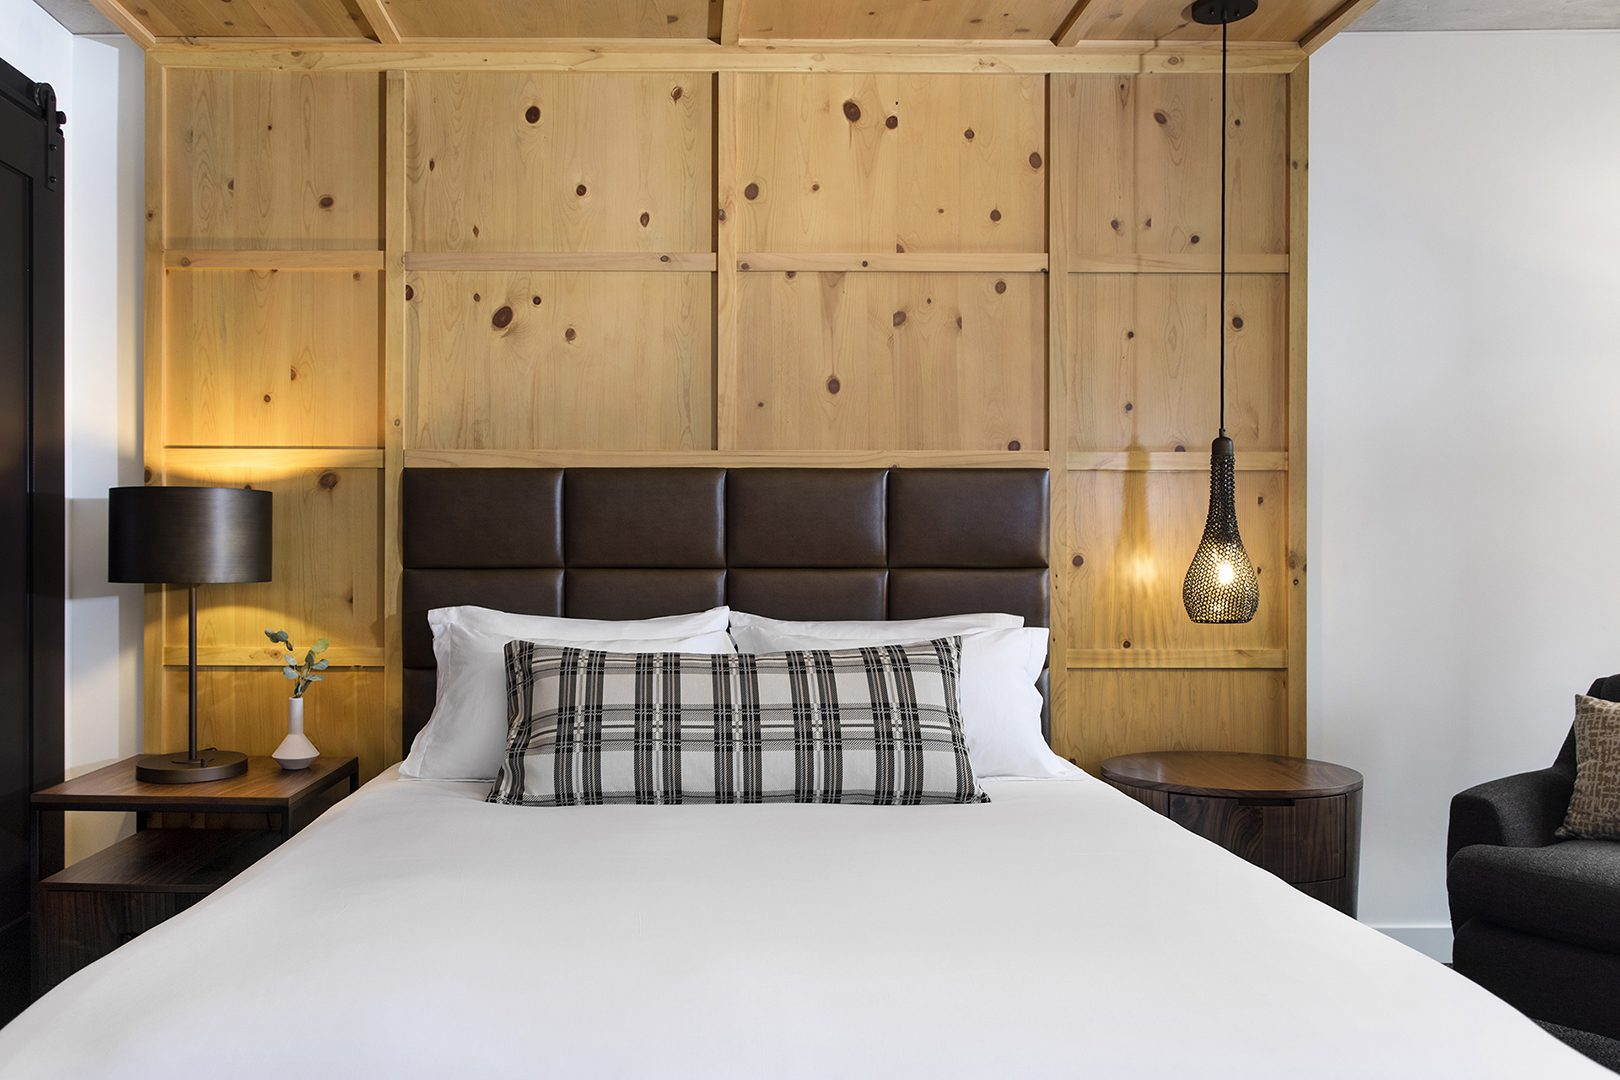 <p>Kimpton Hotel BORN<sup>®</sup>'s 200 guestrooms and suites have been thoughtfully designed with a contemporary Alpine aesthetic, a dedication to detail and understanding of what seasoned travelers desire most.</p>